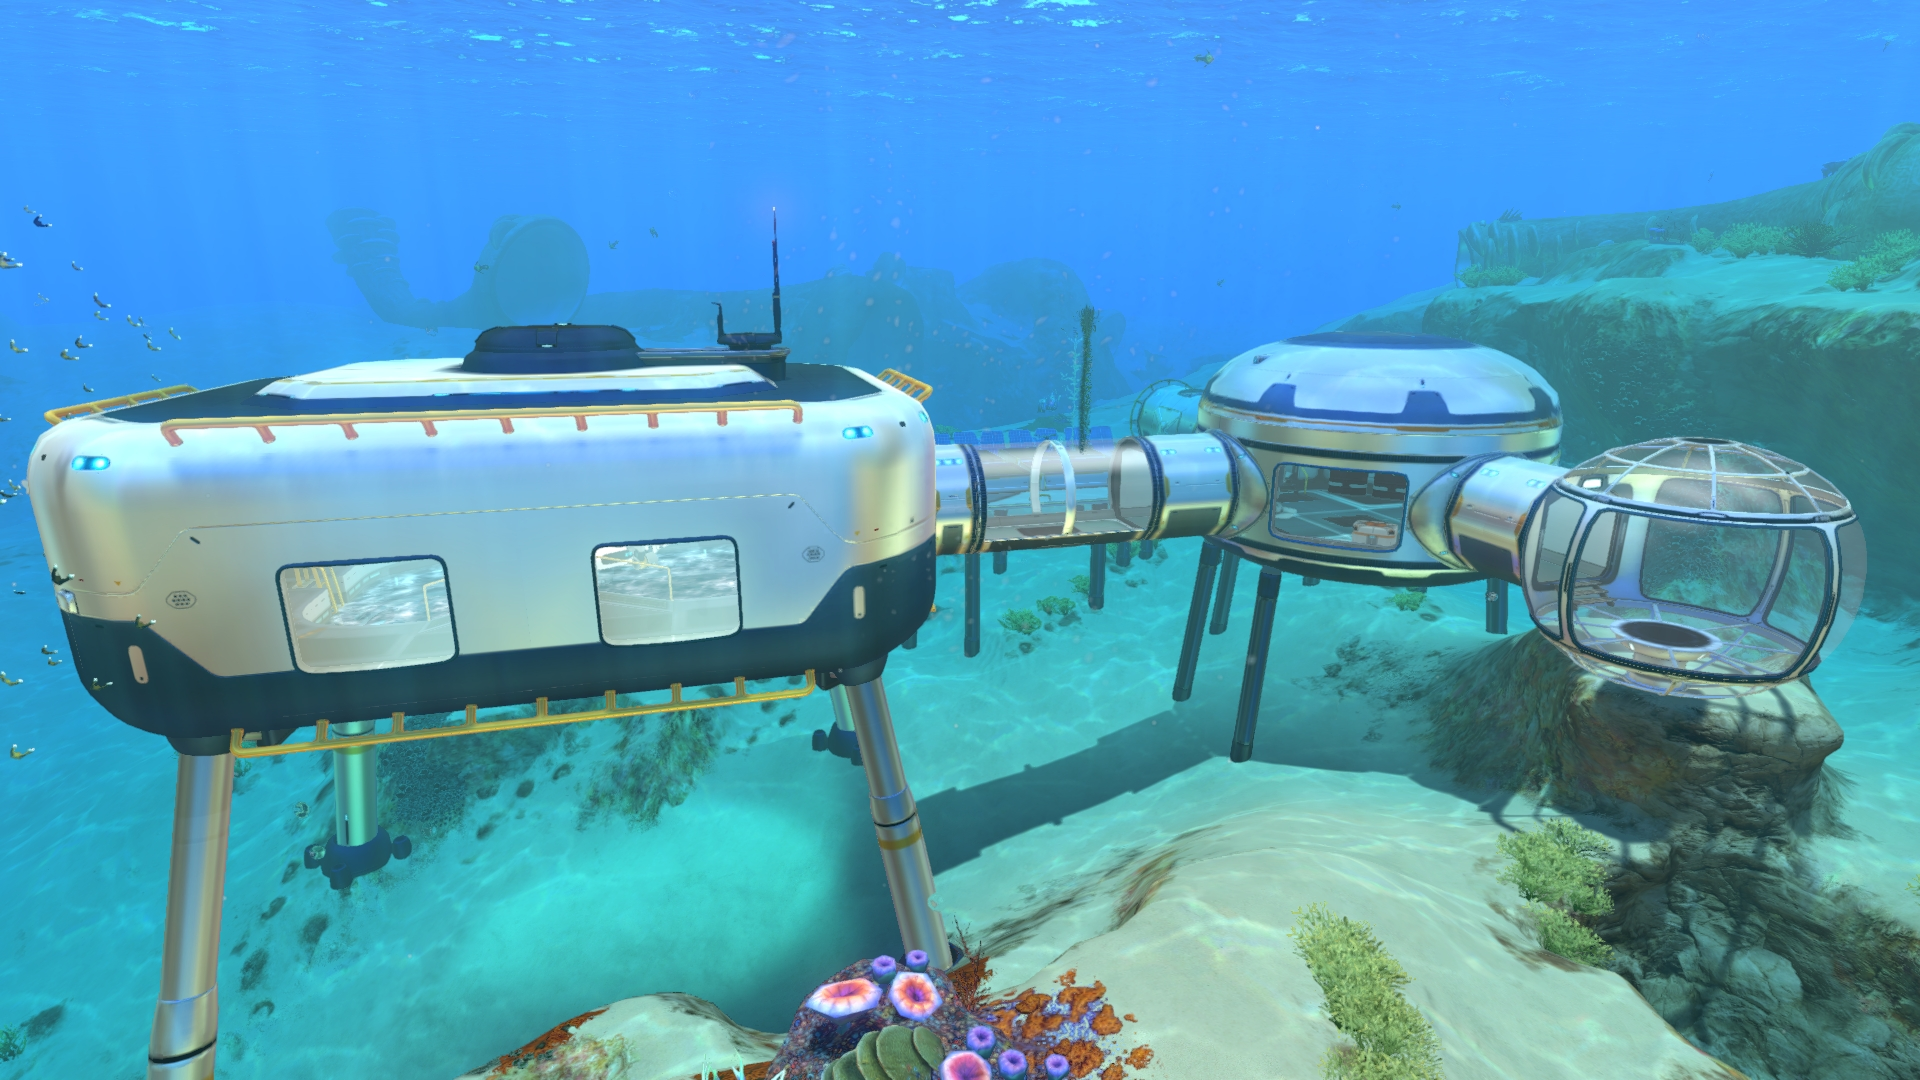 Subnautica building leg reference